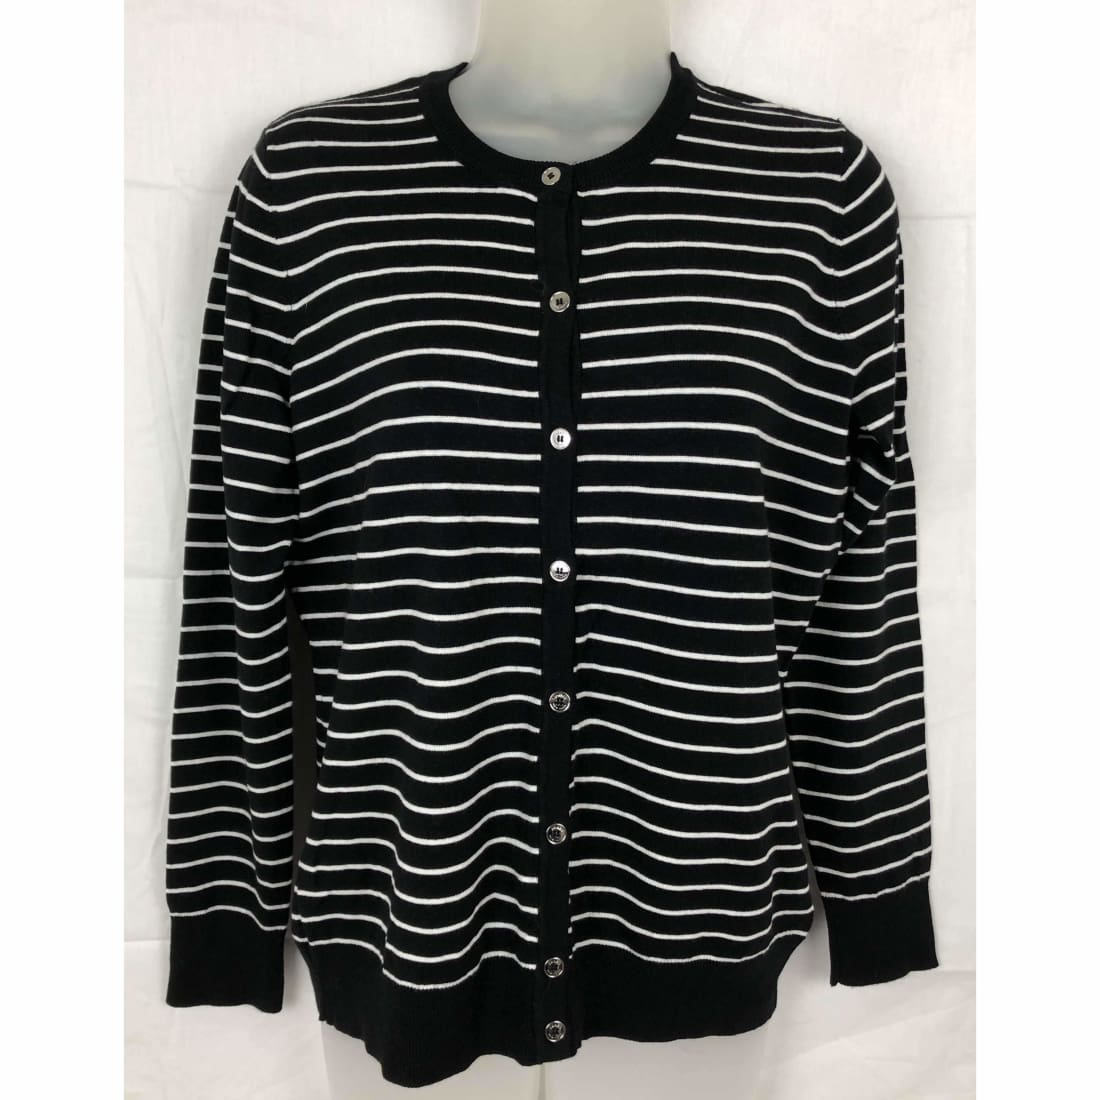 Jones New York Womens Cardigan Button Front Knit Sweater M / Black/white Sweaters